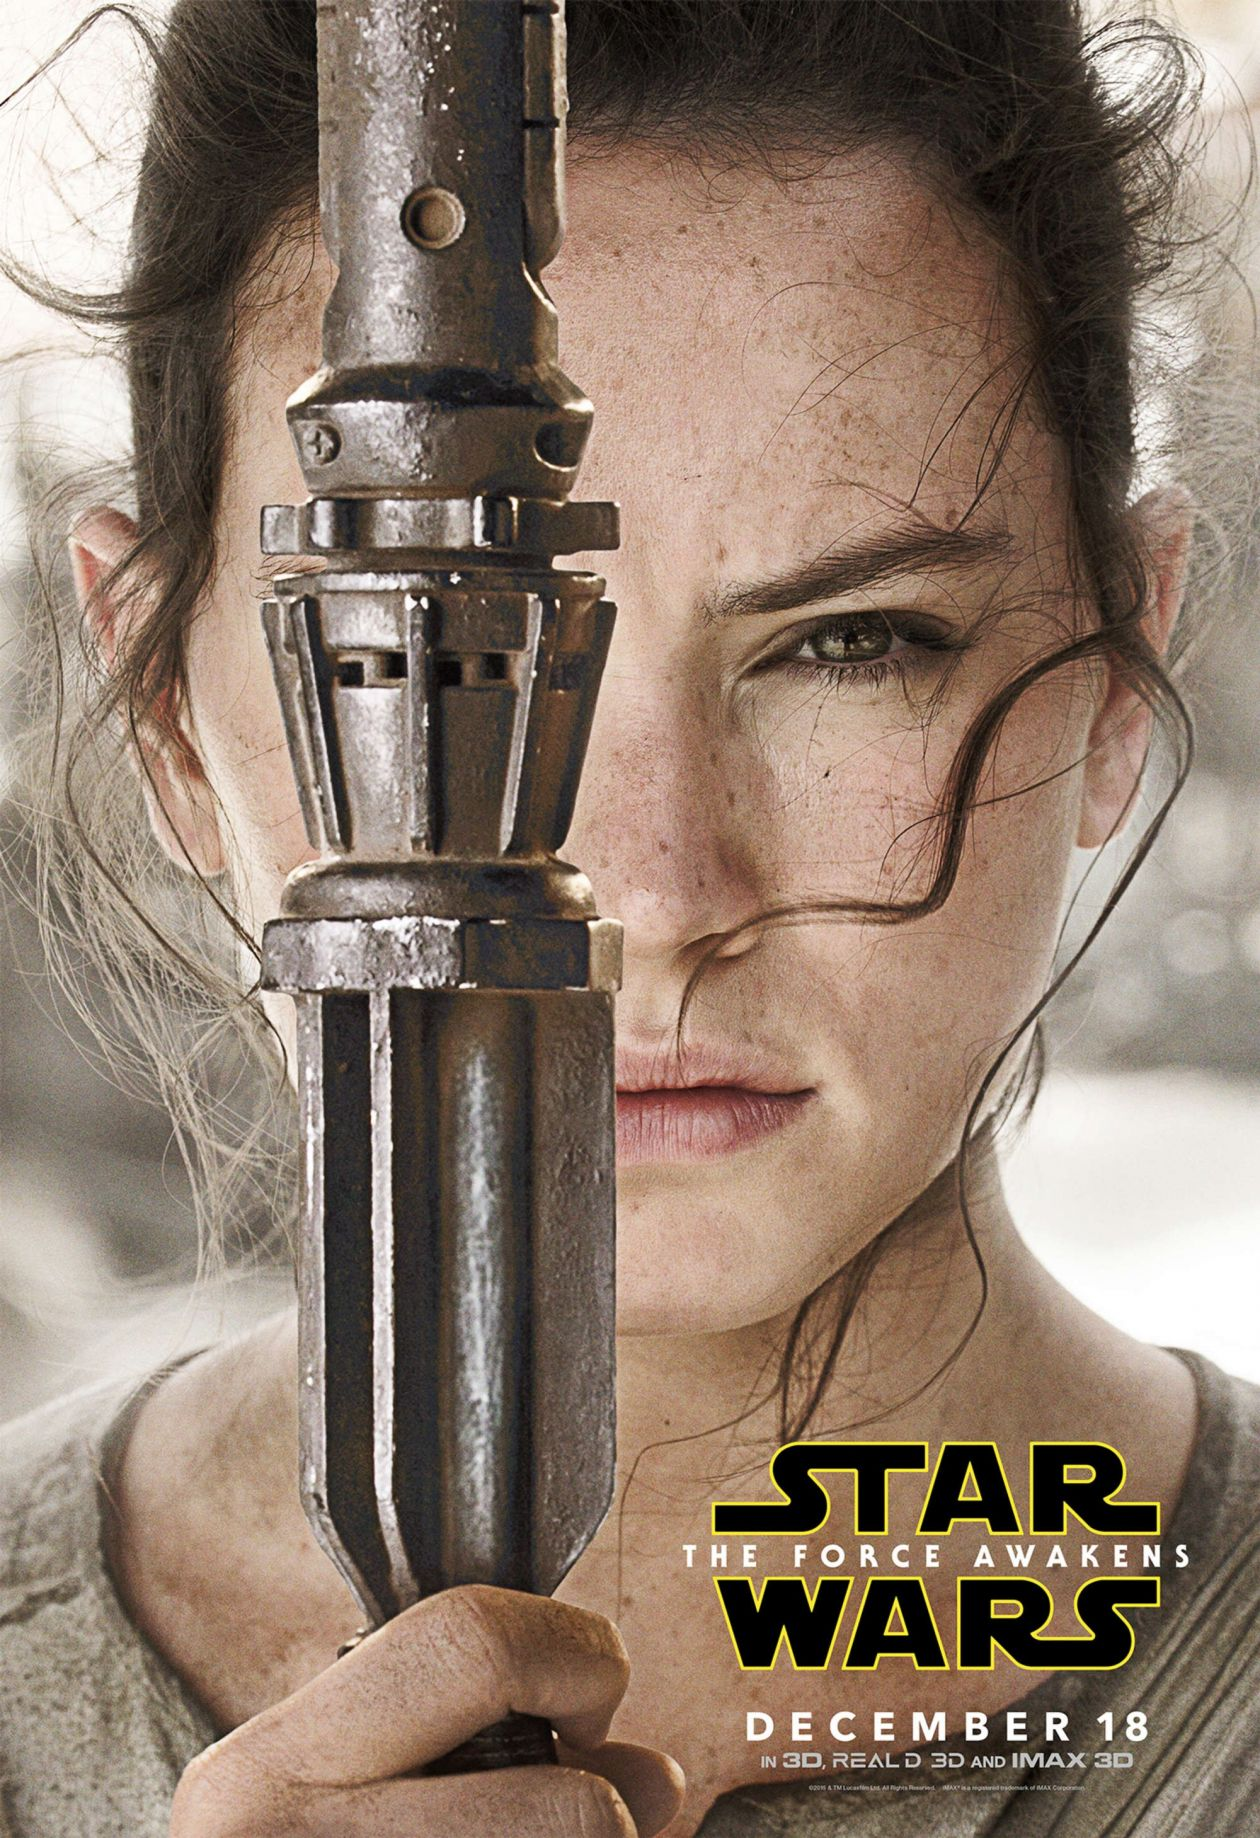 Daisy Ridley actress | Star Wars | The Force Awakens 2015 J. J. Abrams Movie Character Poster Affiche film personnage